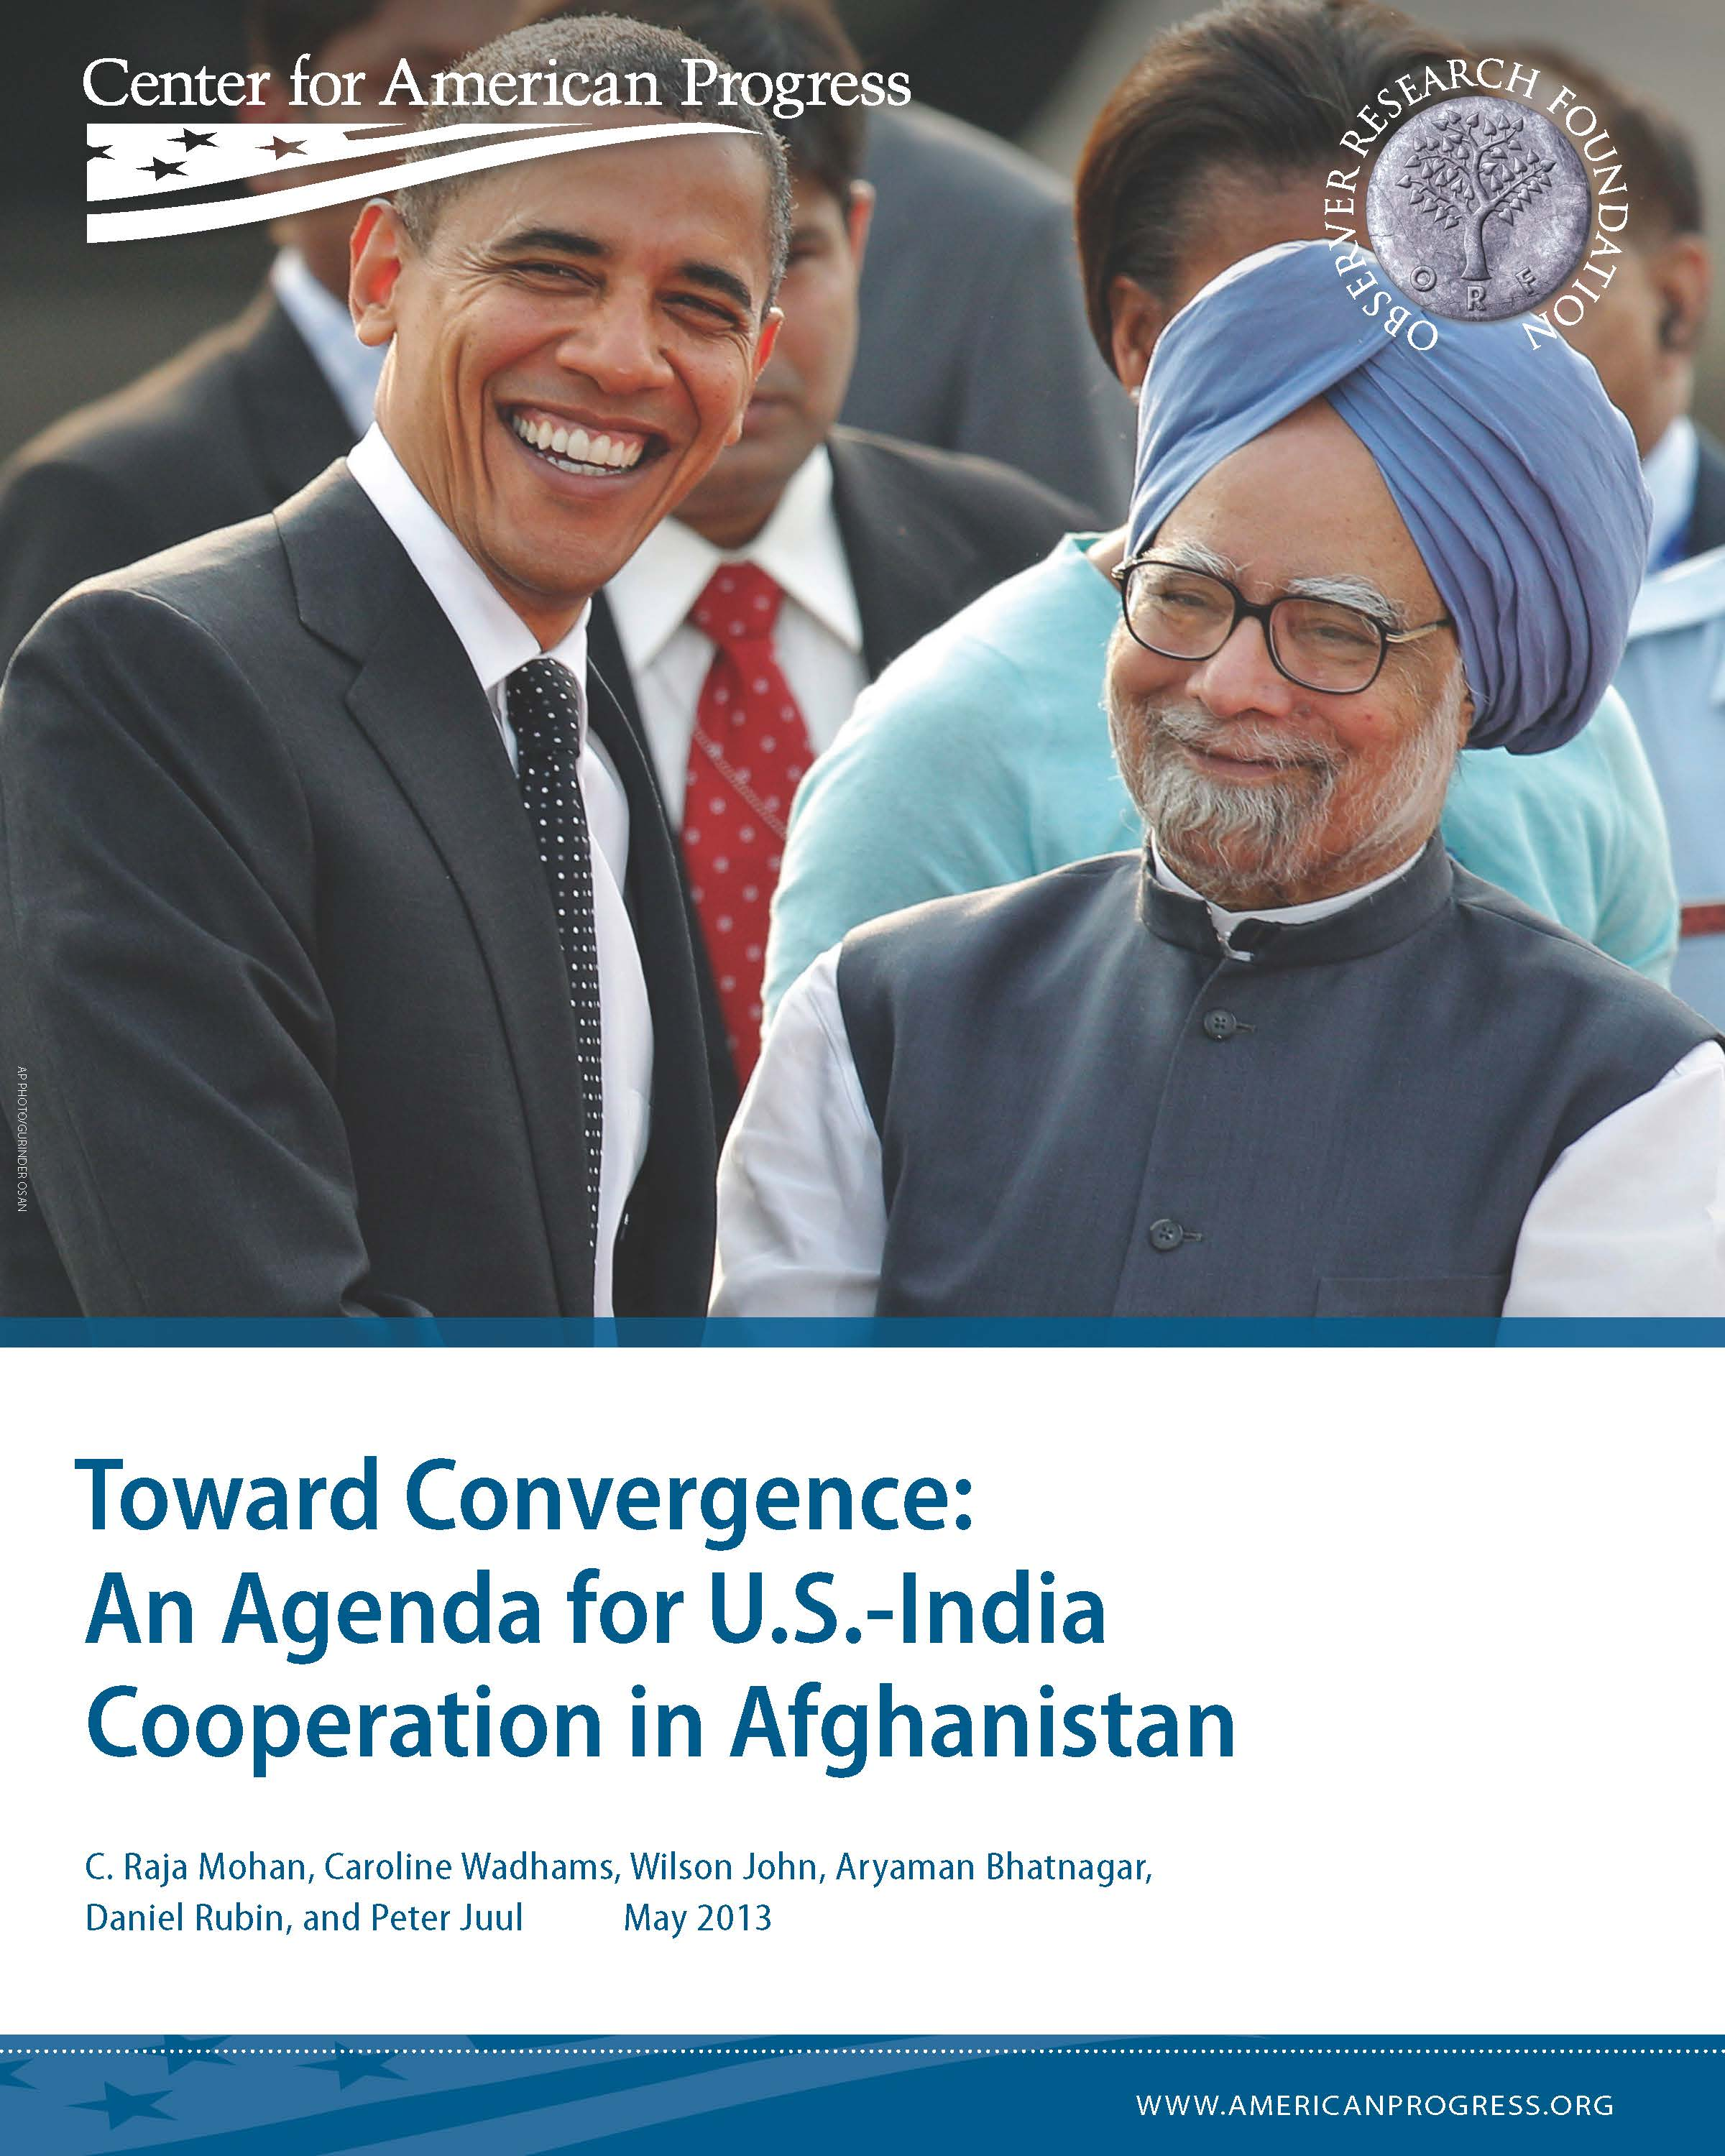 Toward Convergence: An Agenda for U.S.-India Cooperation in Afghanistan